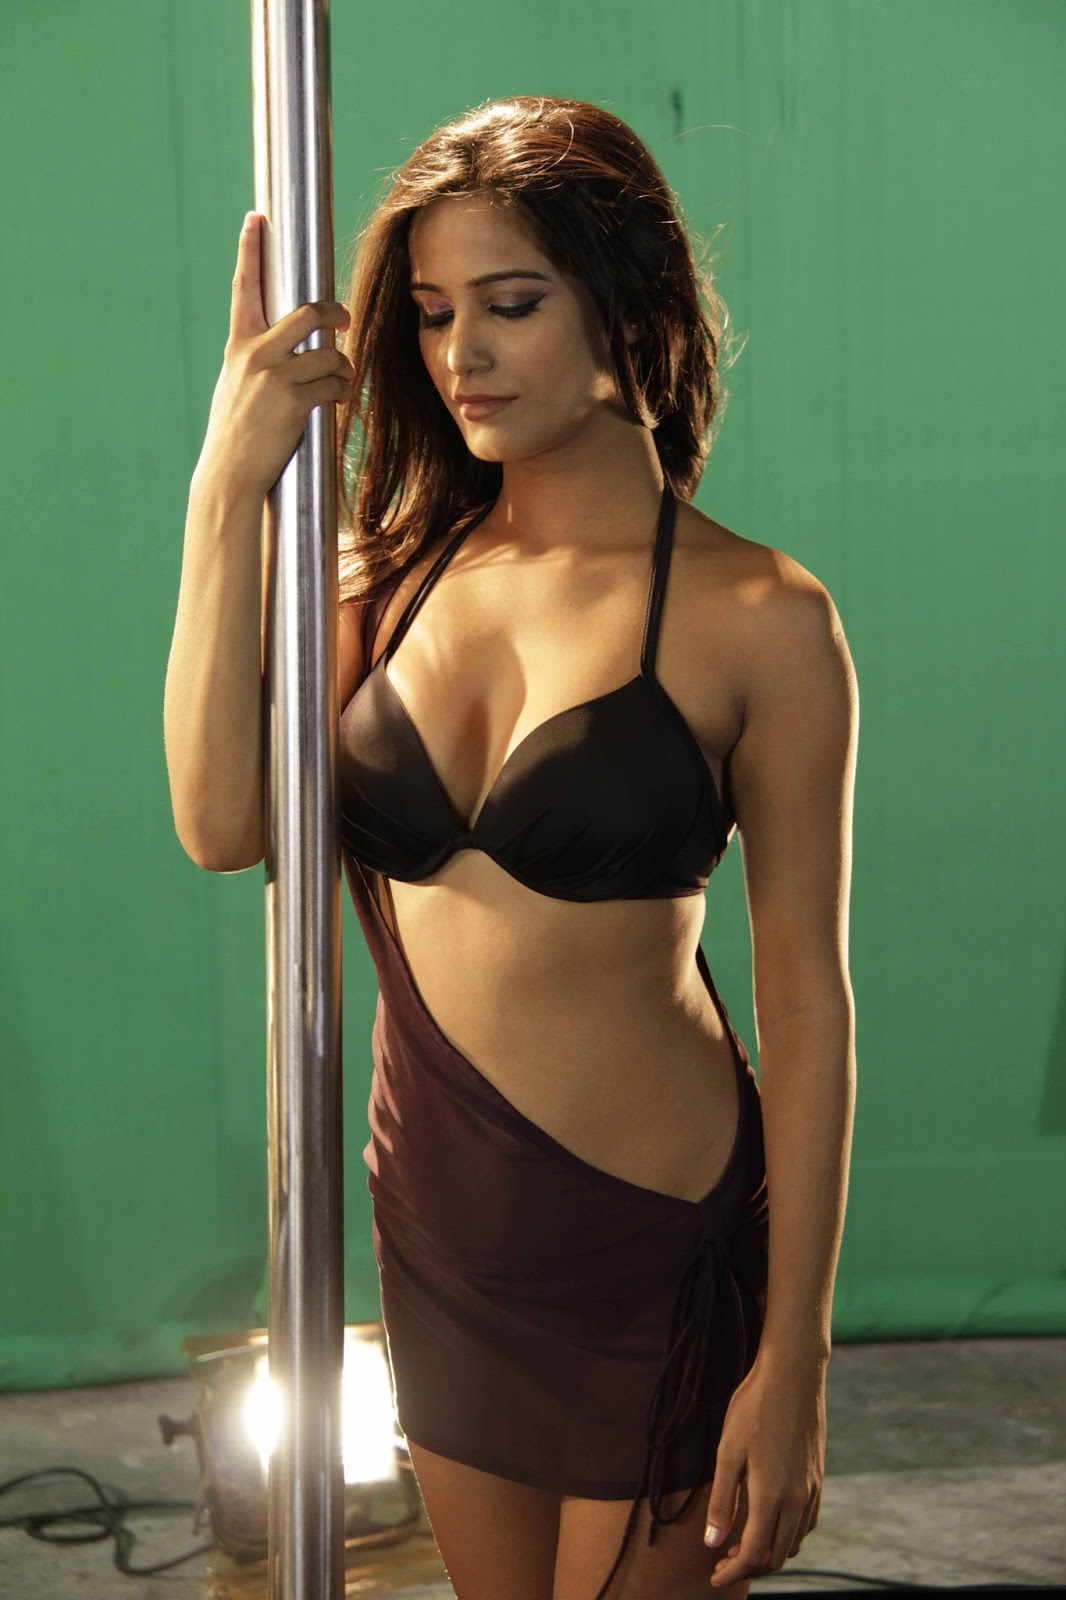 Dimple Girl Wallpaper High Quality Bollywood Celebrity Pictures Poonam Pandey